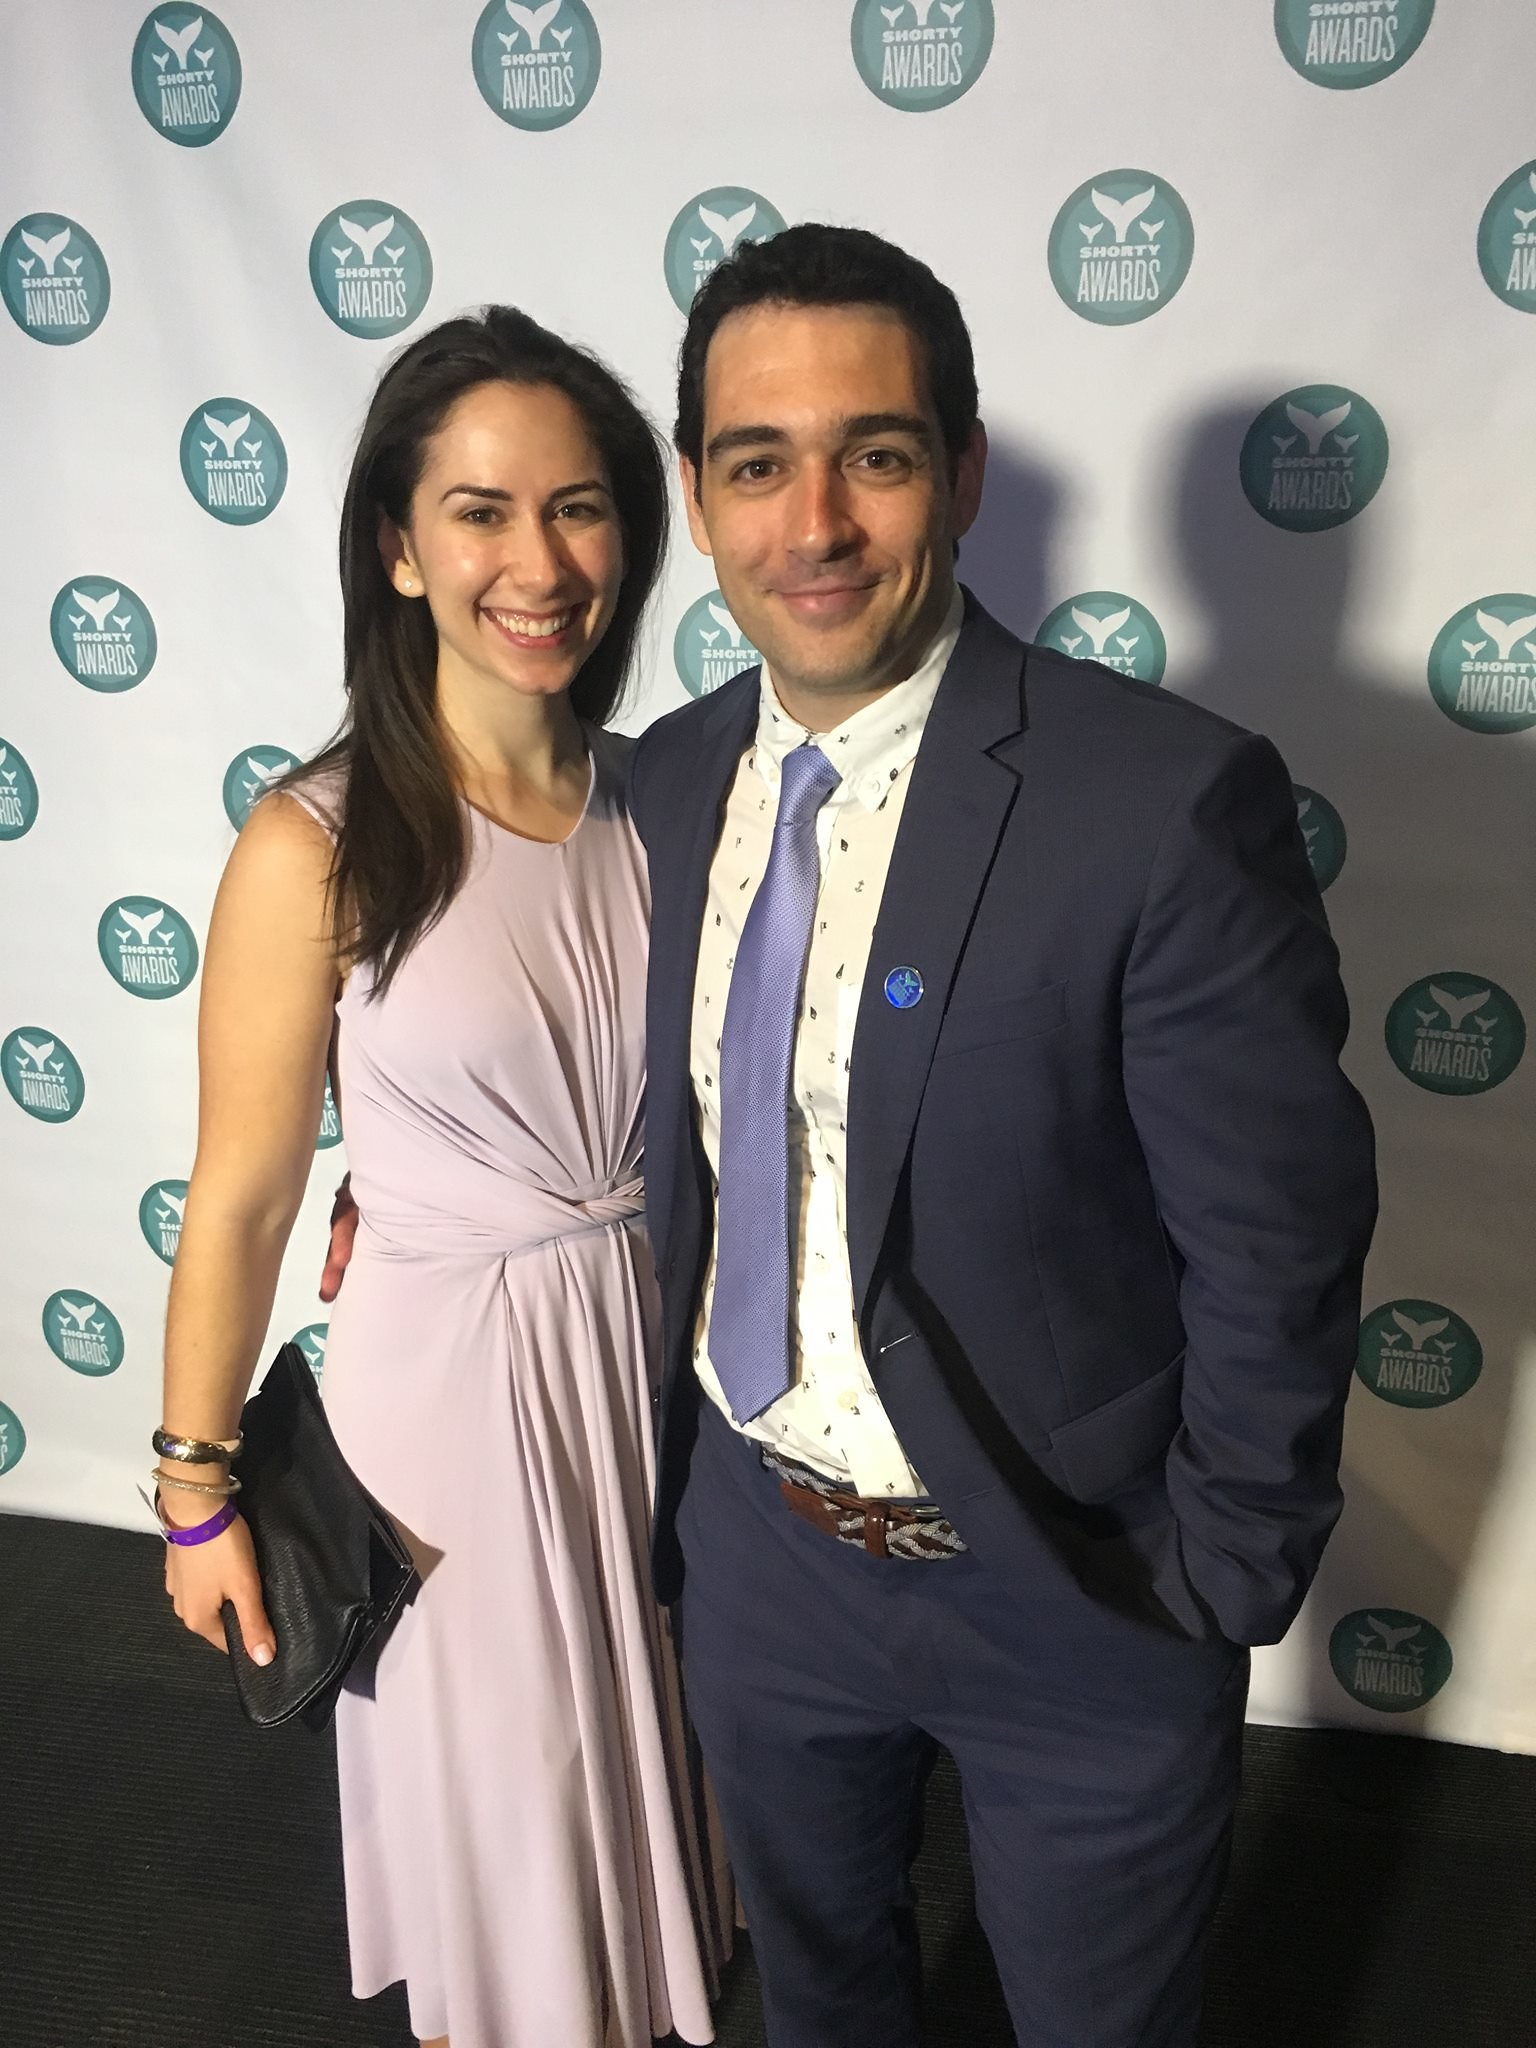 Rachel Louise Ensign and Andrew Kaczynski at the Shorty Awards onJune 4, 2017 | Photo: Flickr/Some Brooklynguy